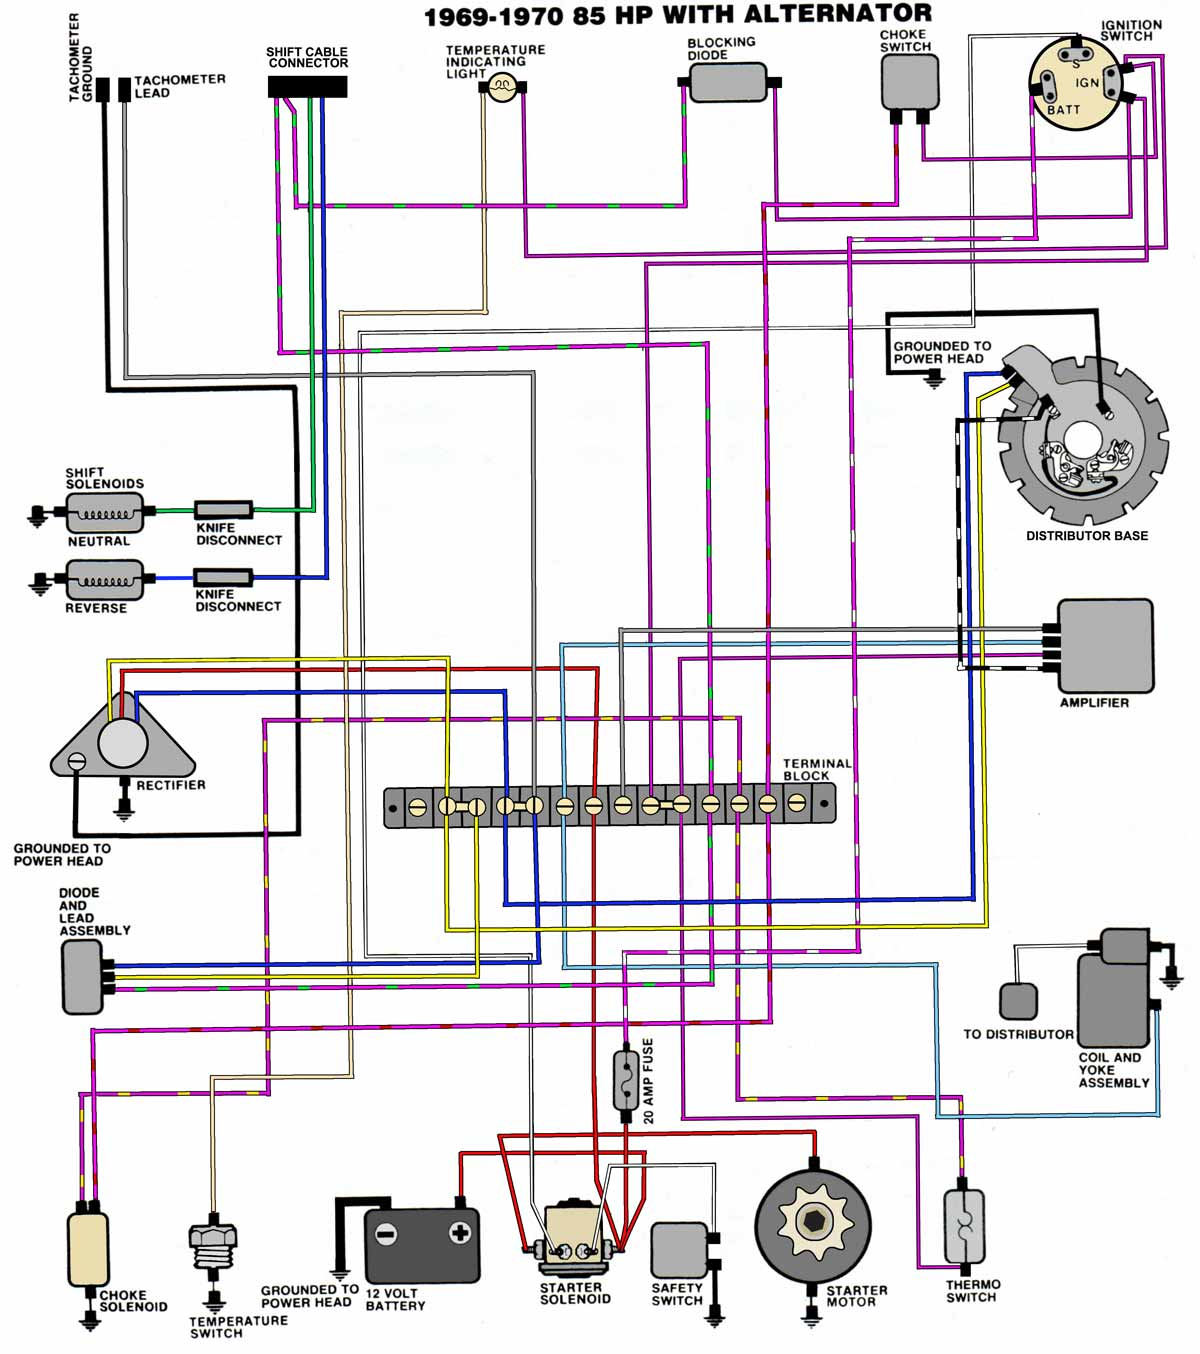 69_70_V4?resize\=665%2C750 1971 johnson control wiring diagram gandul 45 77 79 119 Metasys Ahu Controller at edmiracle.co